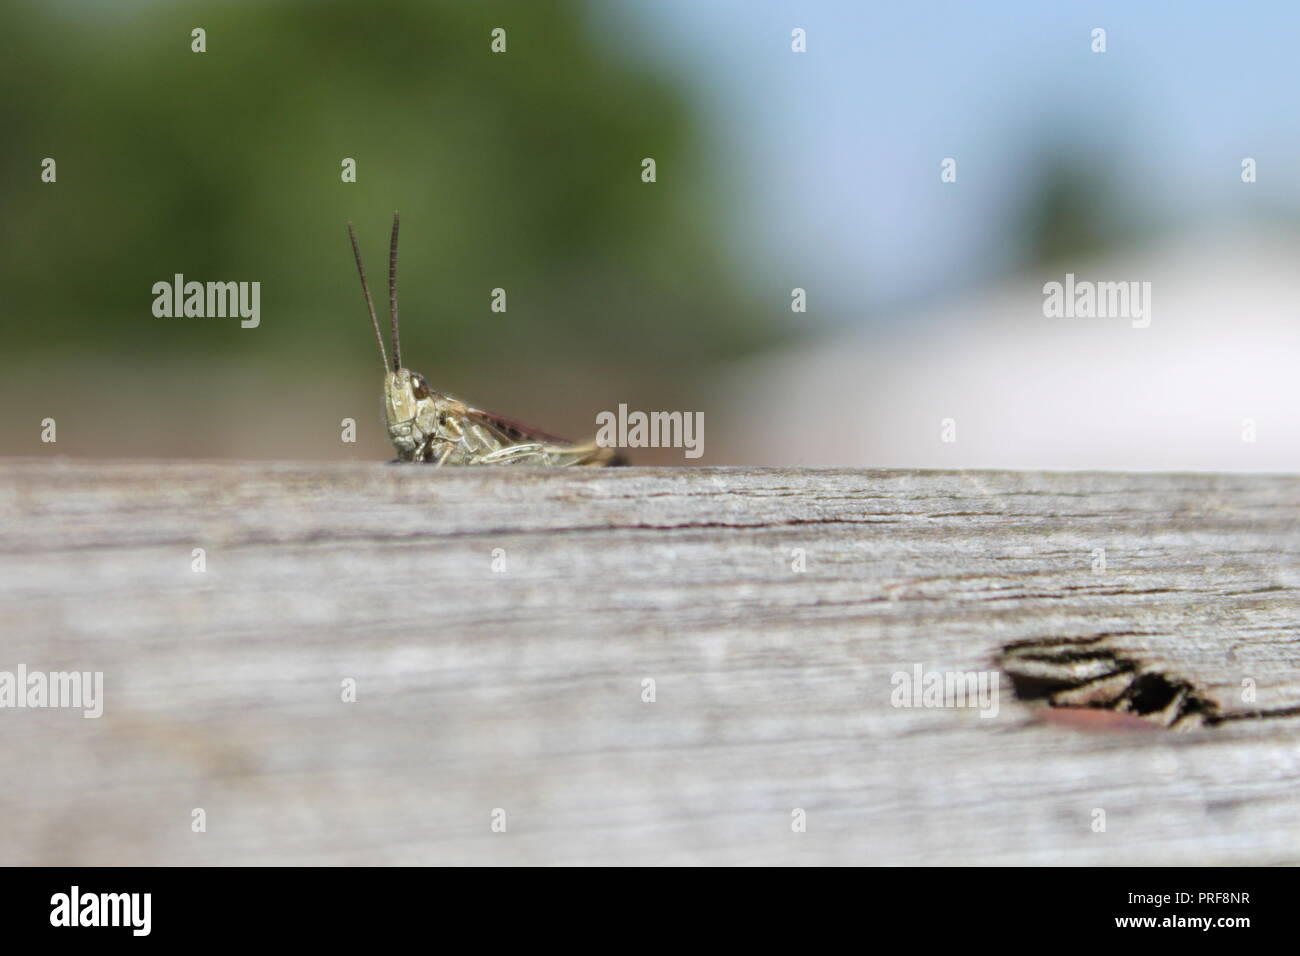 grasshopper on a fence - Stock Image